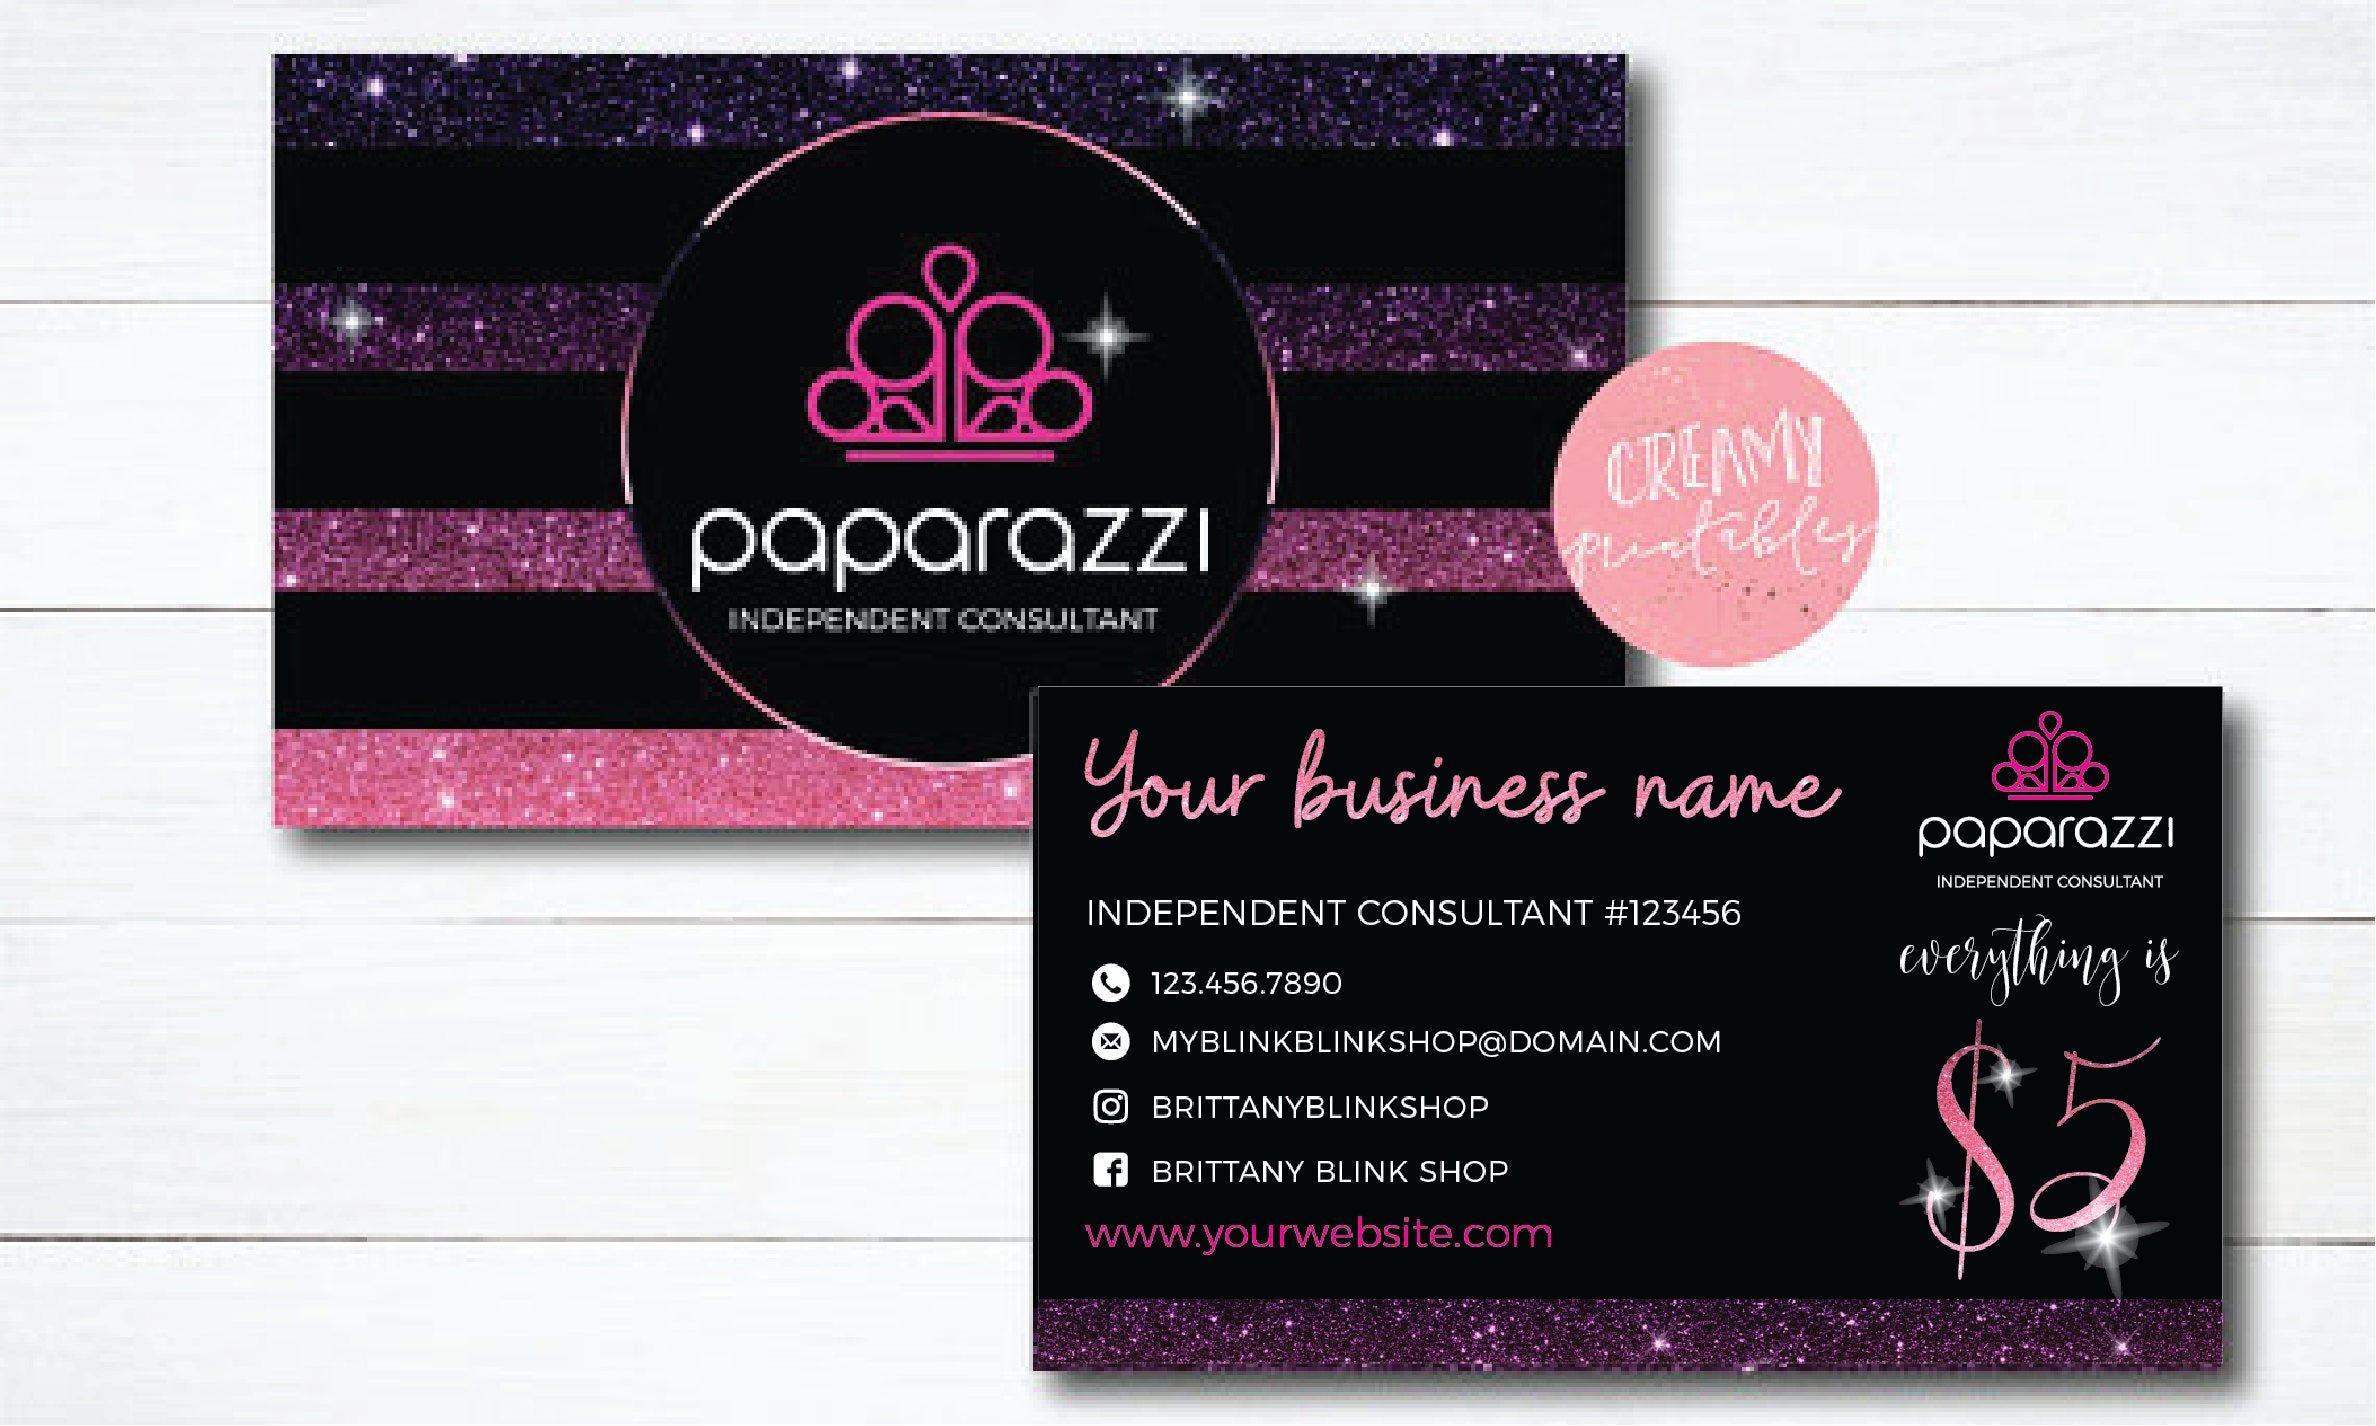 Paparazzi business cards free personalized paparazzi jewelry for Order custom business cards